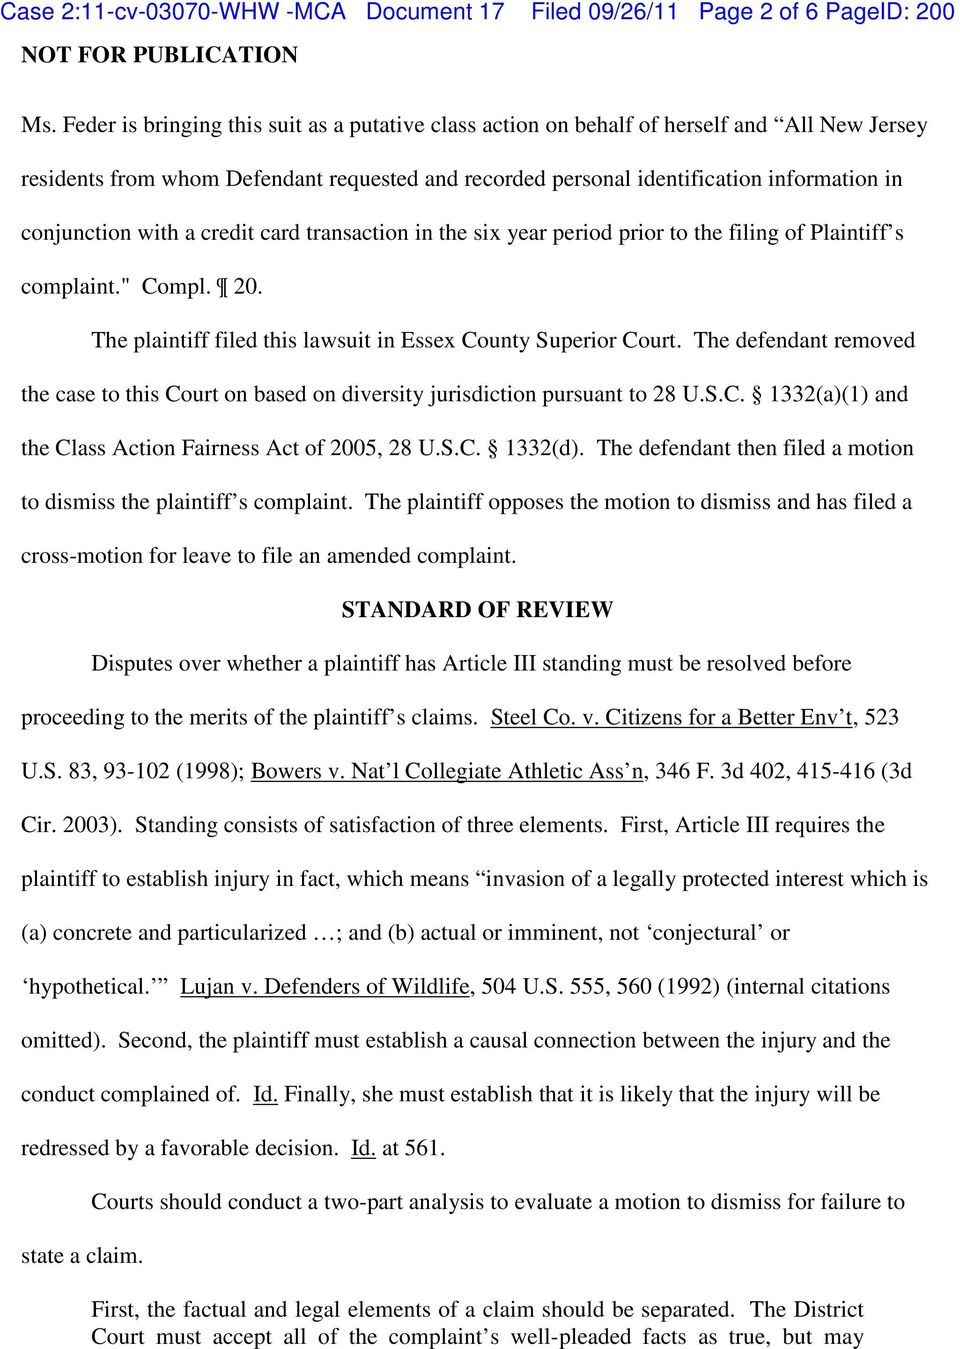 "with a credit card transaction in the six year period prior to the filing of Plaintiff s complaint."" Compl. 20. The plaintiff filed this lawsuit in Essex County Superior Court."